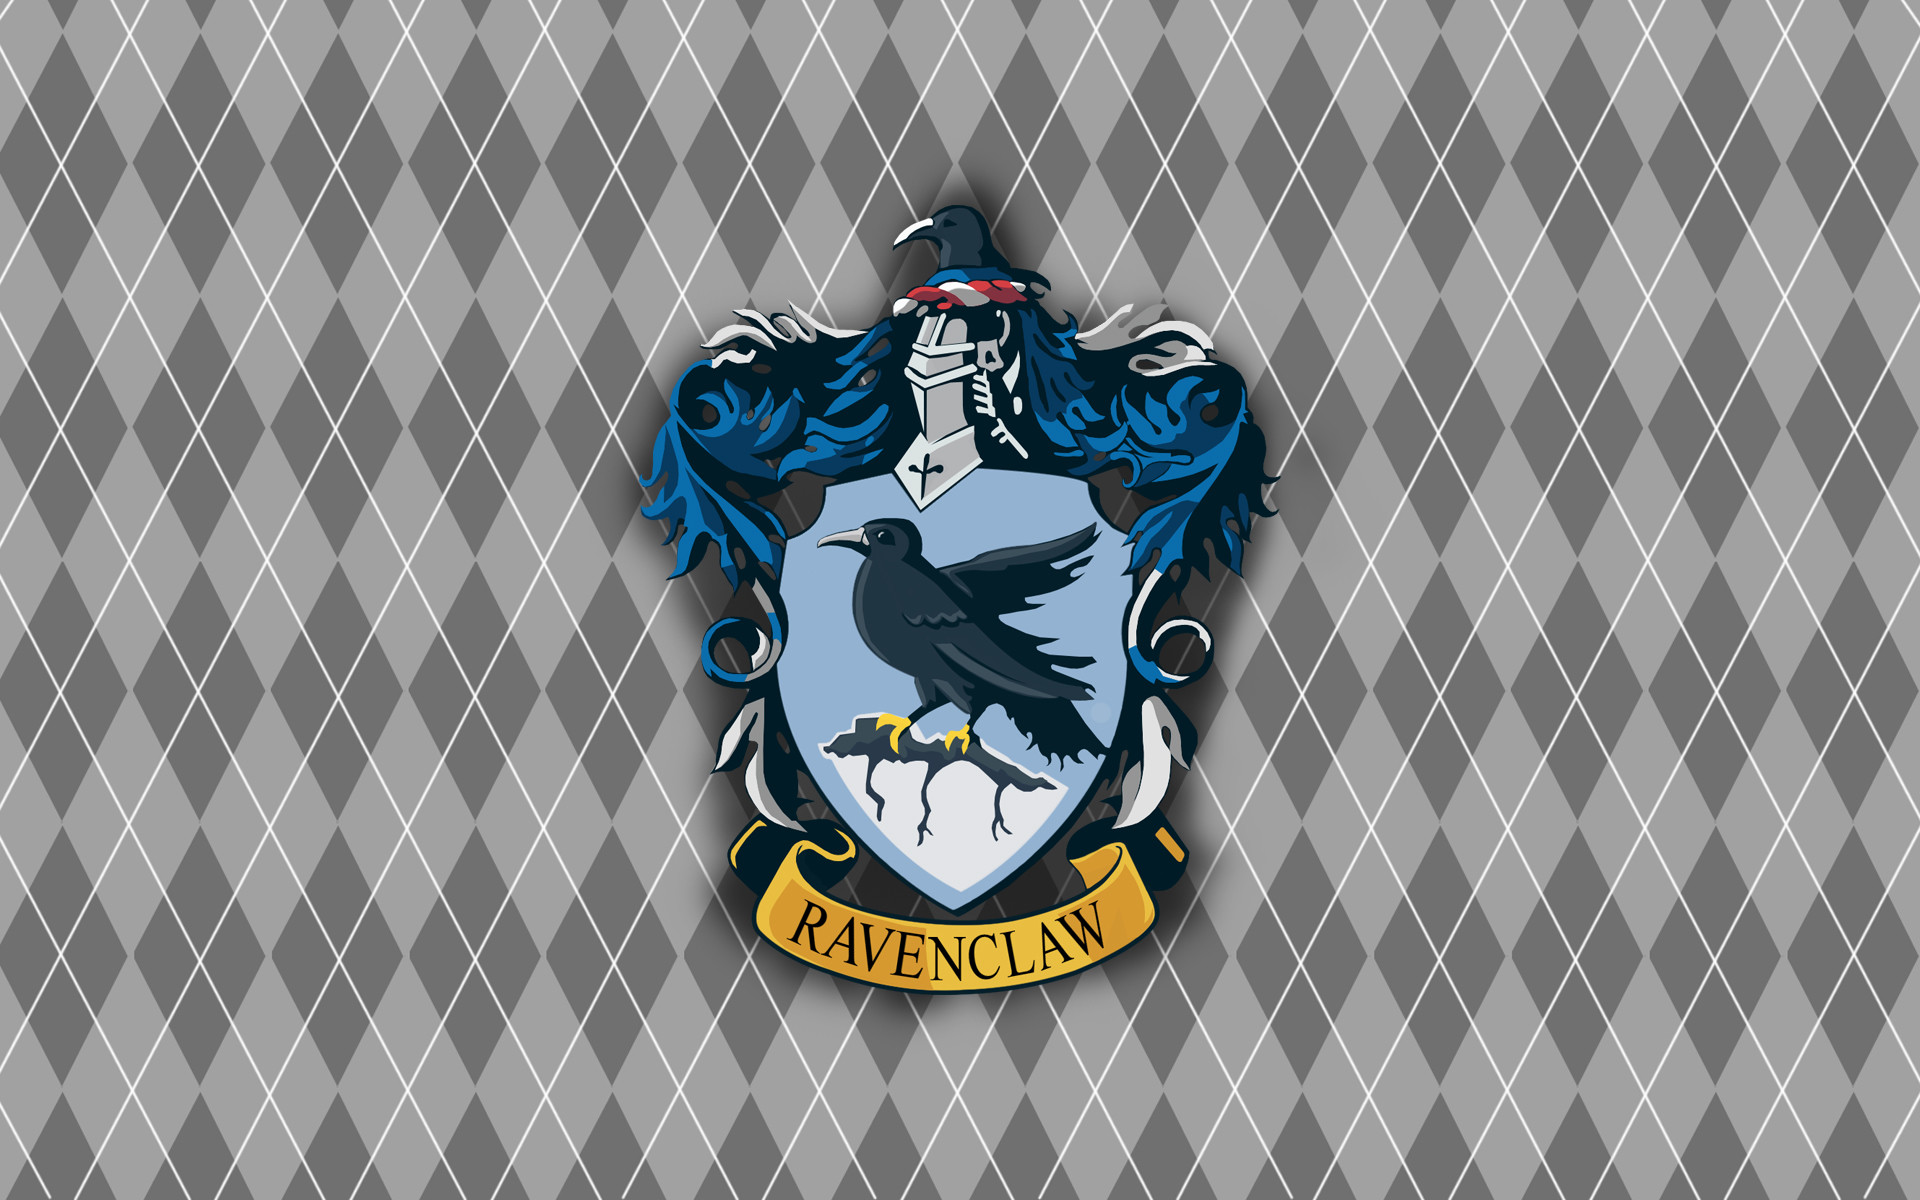 1920x1200 Ravenclaw Wallpaper by dragonlover28